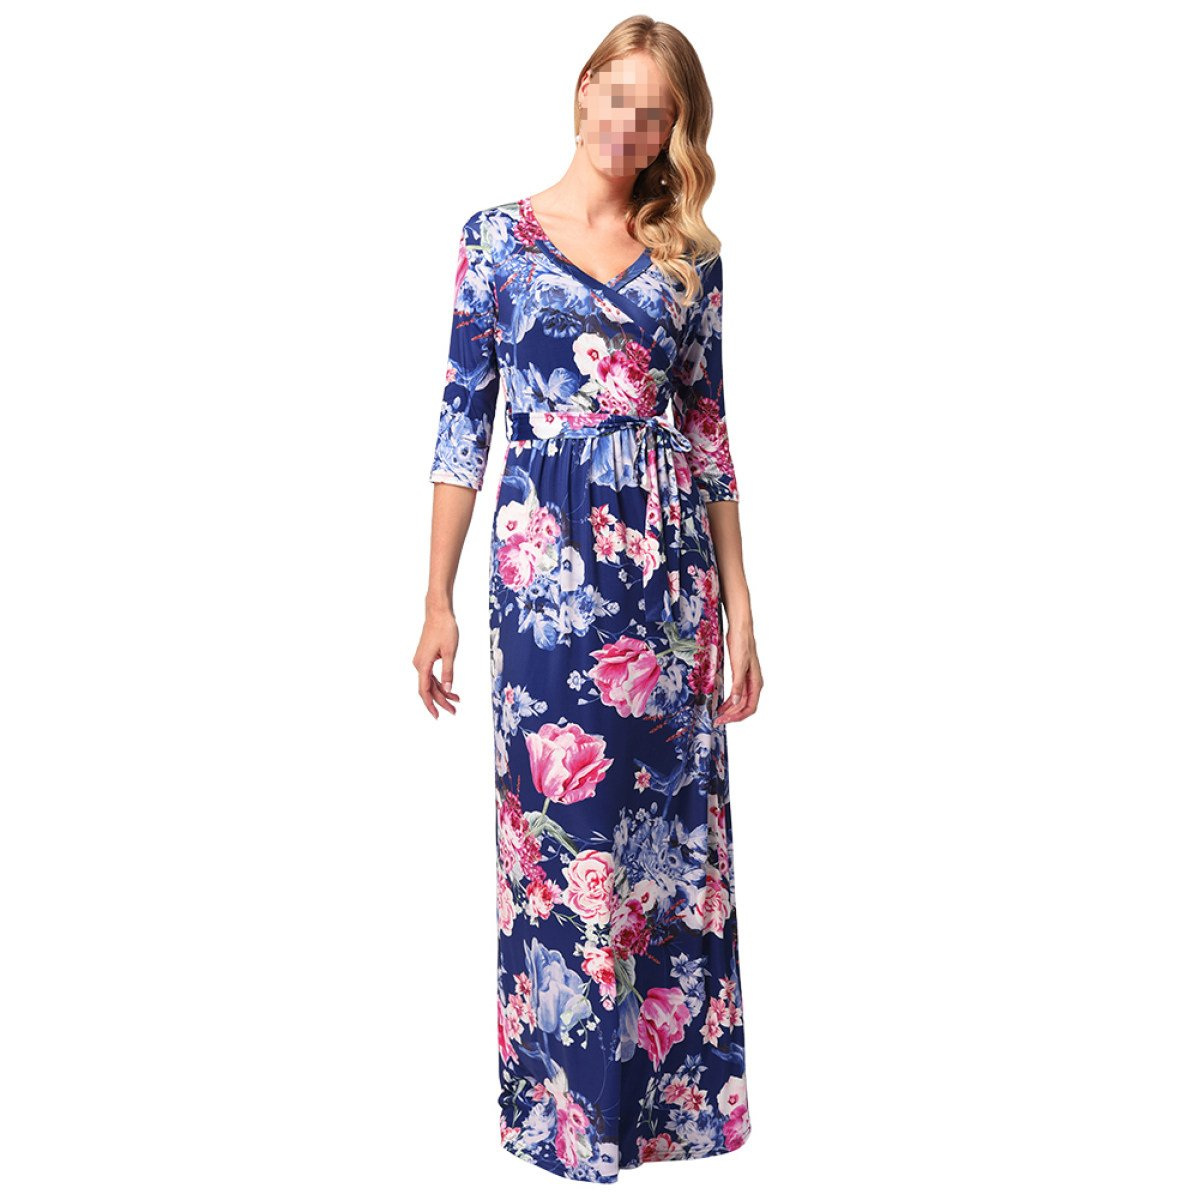 EALSN Women Boho Floral Long Sleeve Dress Ladies Evening Party Long Maxi Dress,Blue-L: Amazon.co.uk: Kitchen & Home